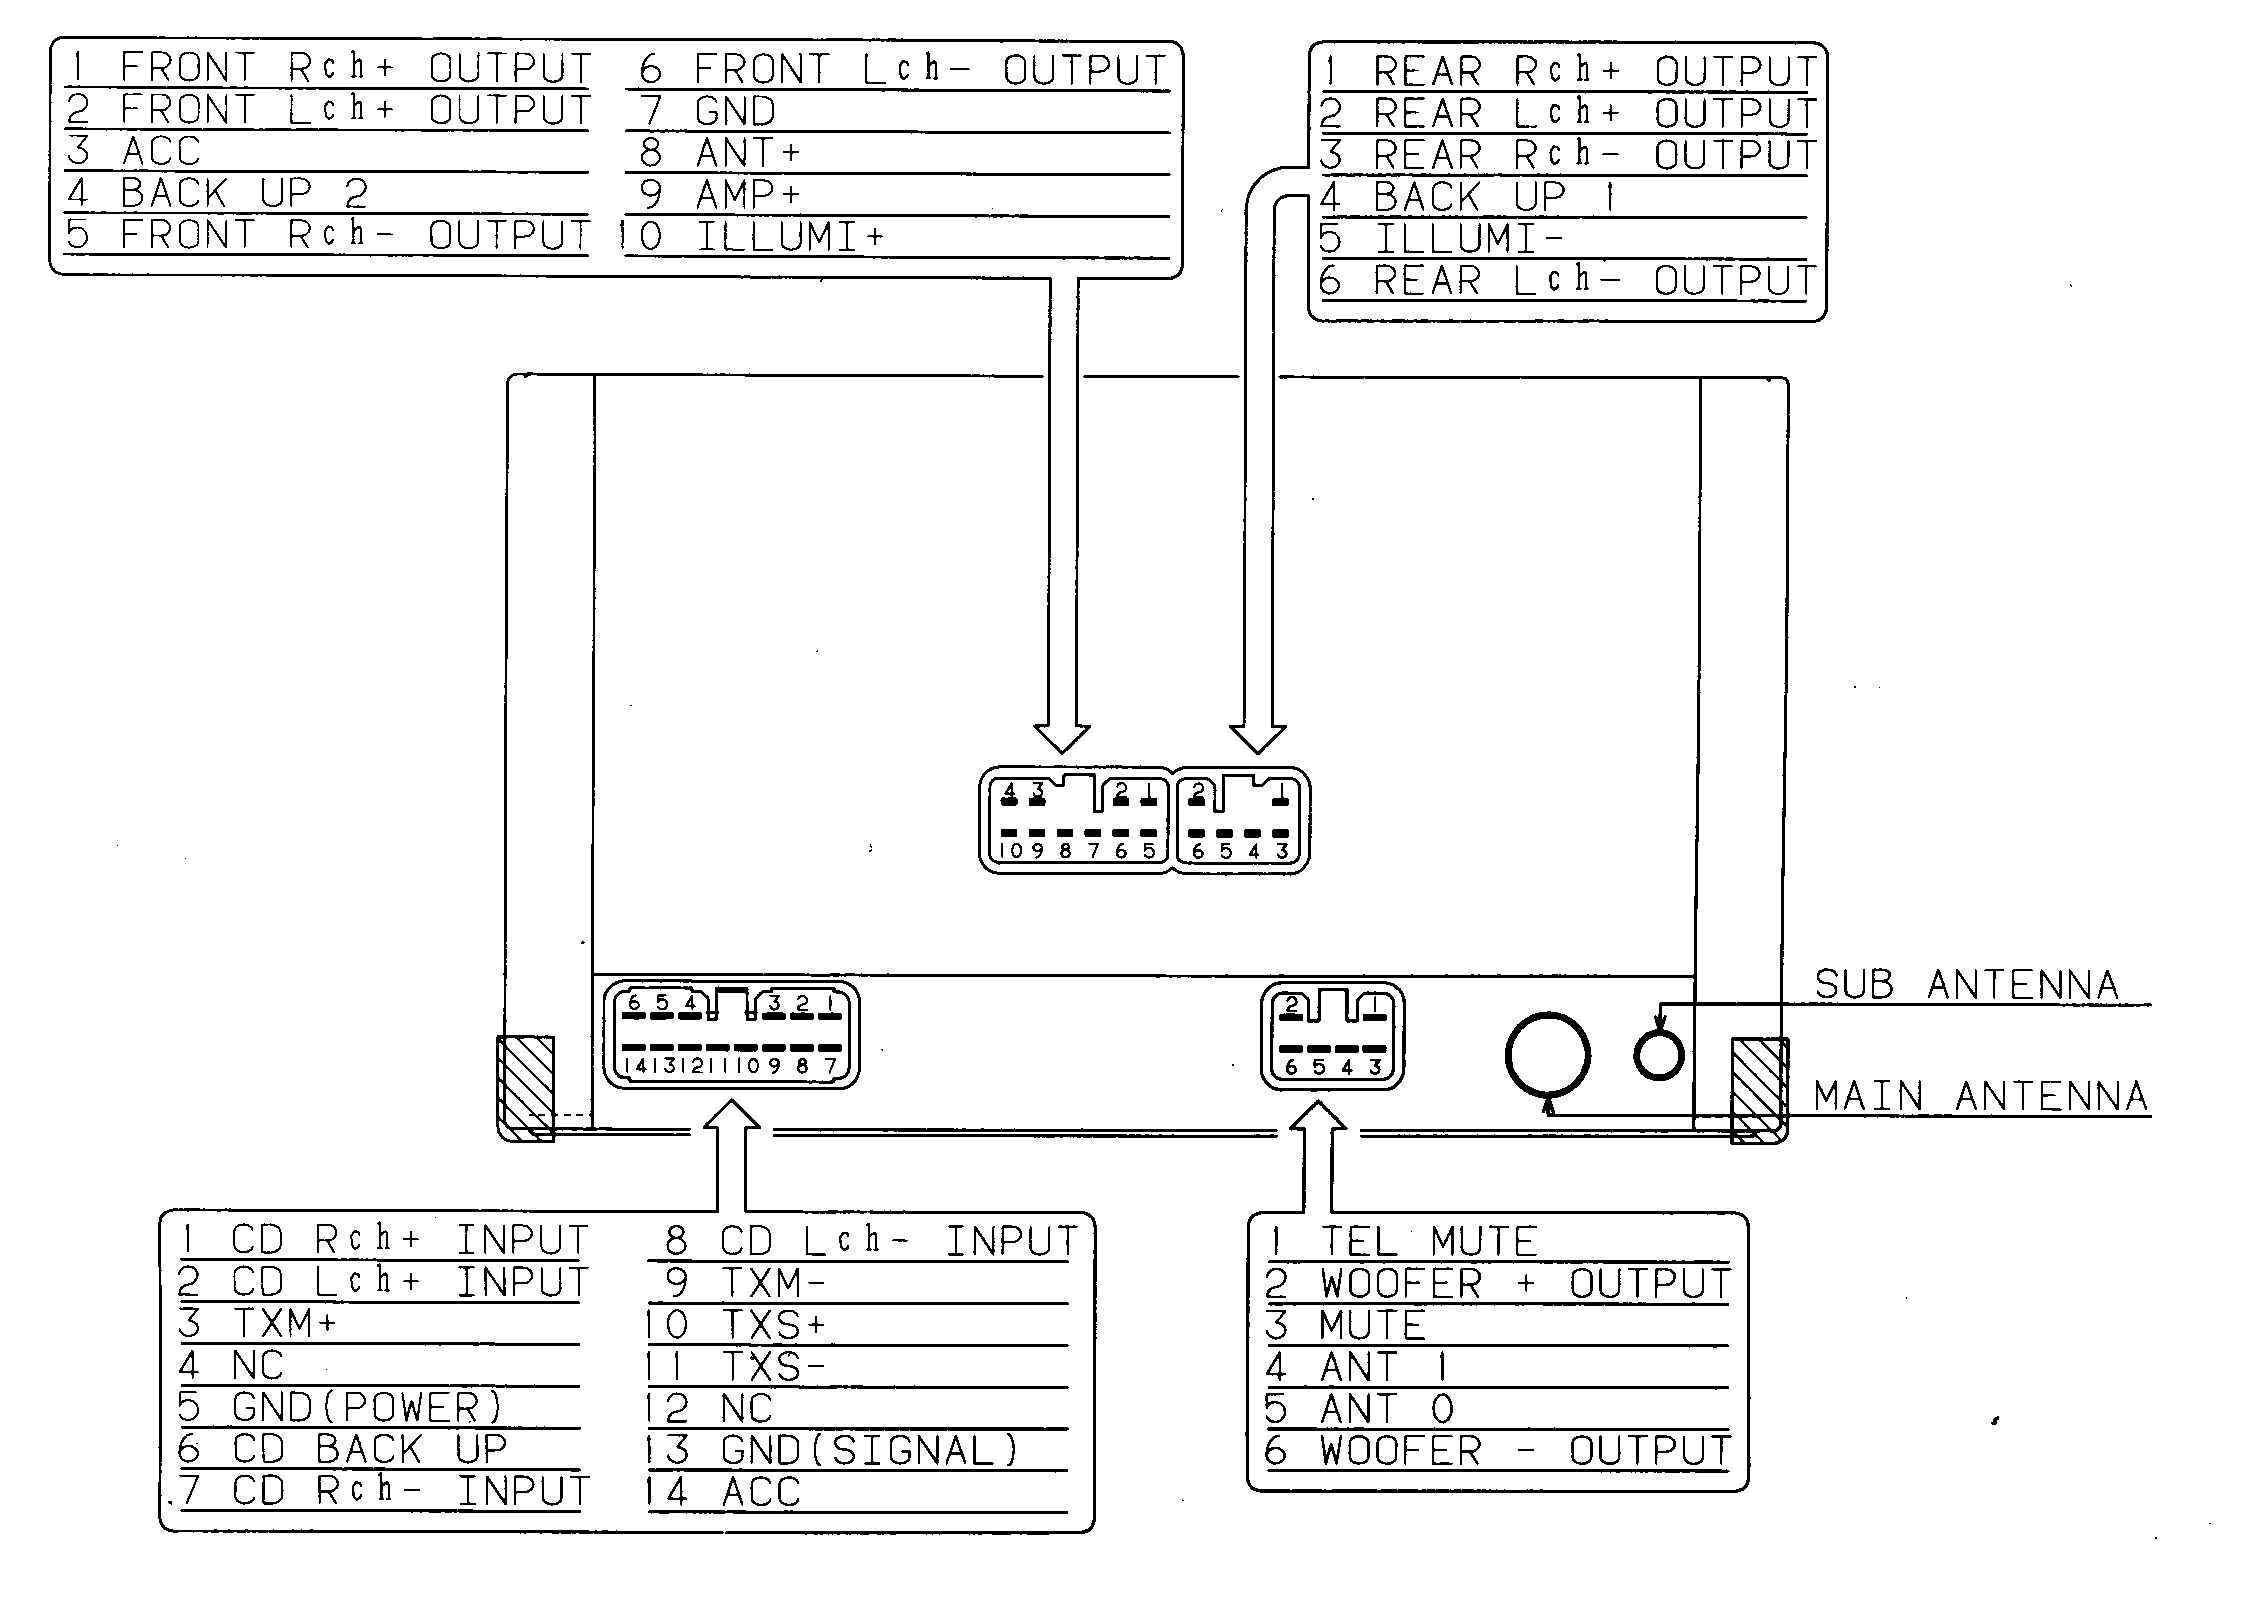 Lexus car stereo wiring diagram harness pinout connector wire 1996 jeep grand cherokee car stereo radio wiring diagram wiring 2002 jeep cherokee radio wiring diagram at pacquiaovsvargaslive.co